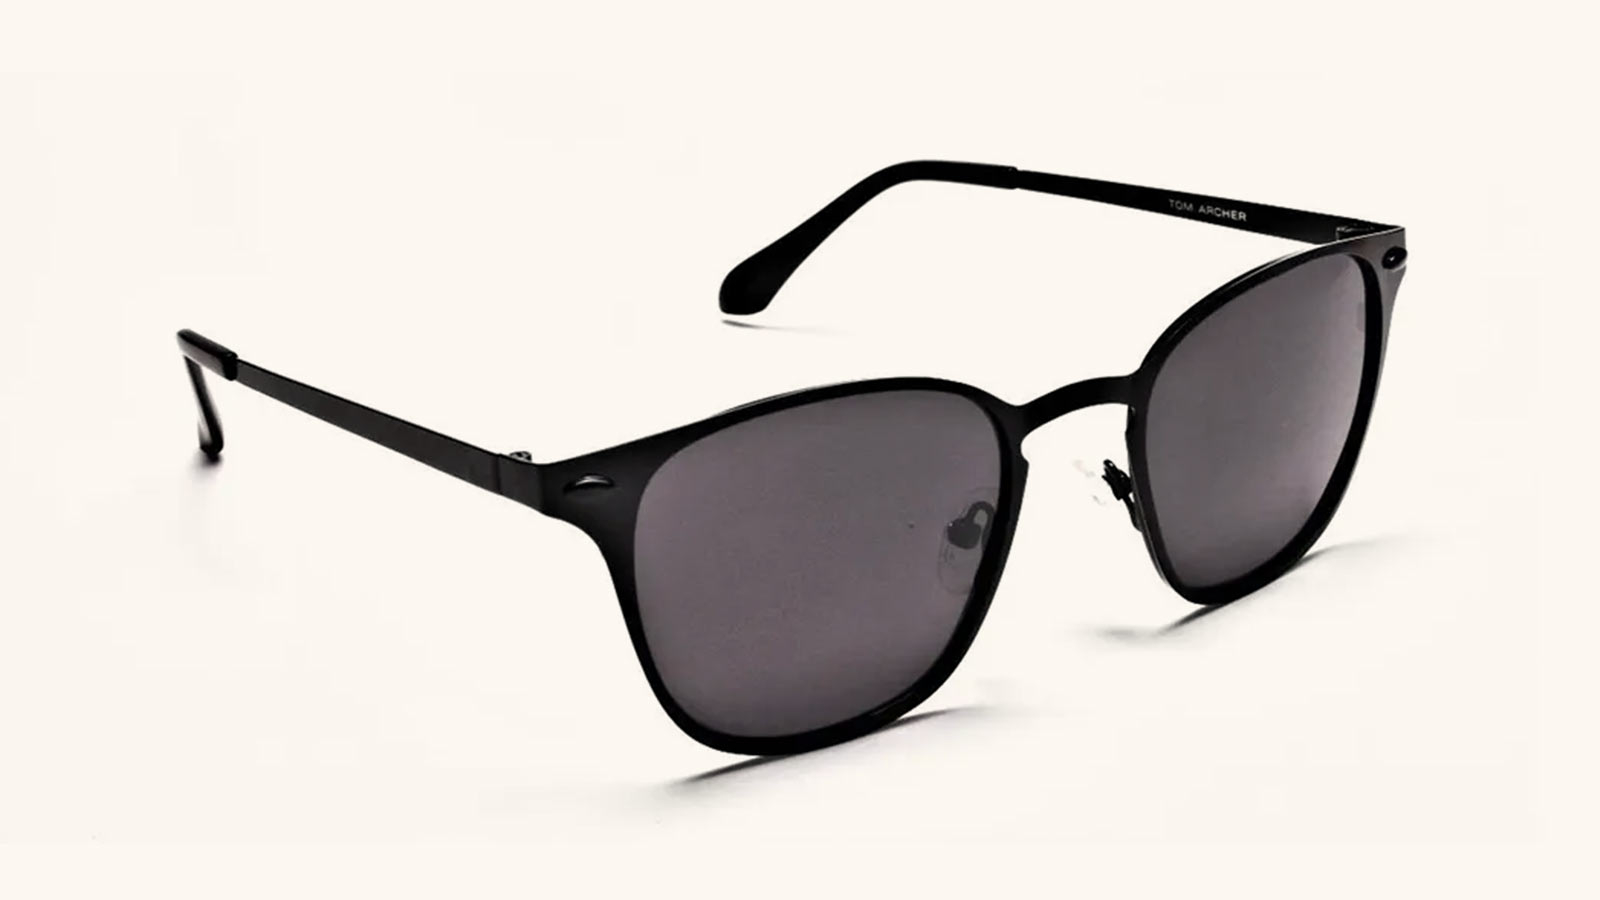 Wayfarer Sunglasses for Travel